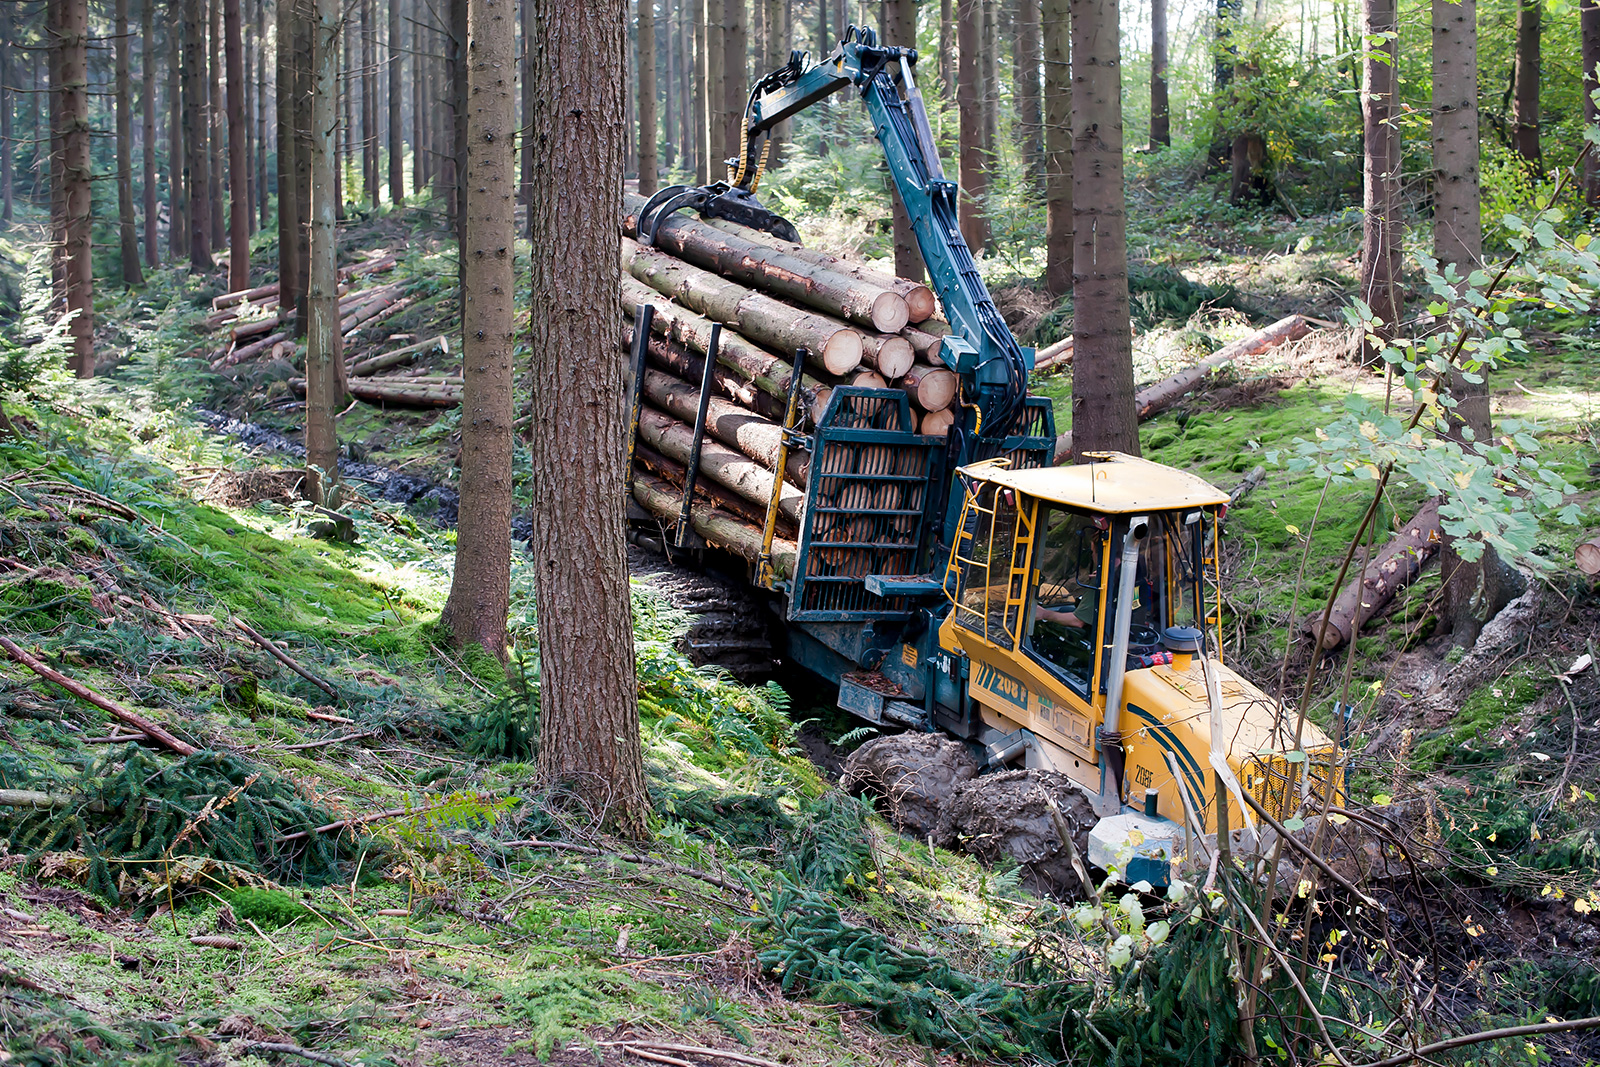 Forestry work in the forest in Engelskirchen